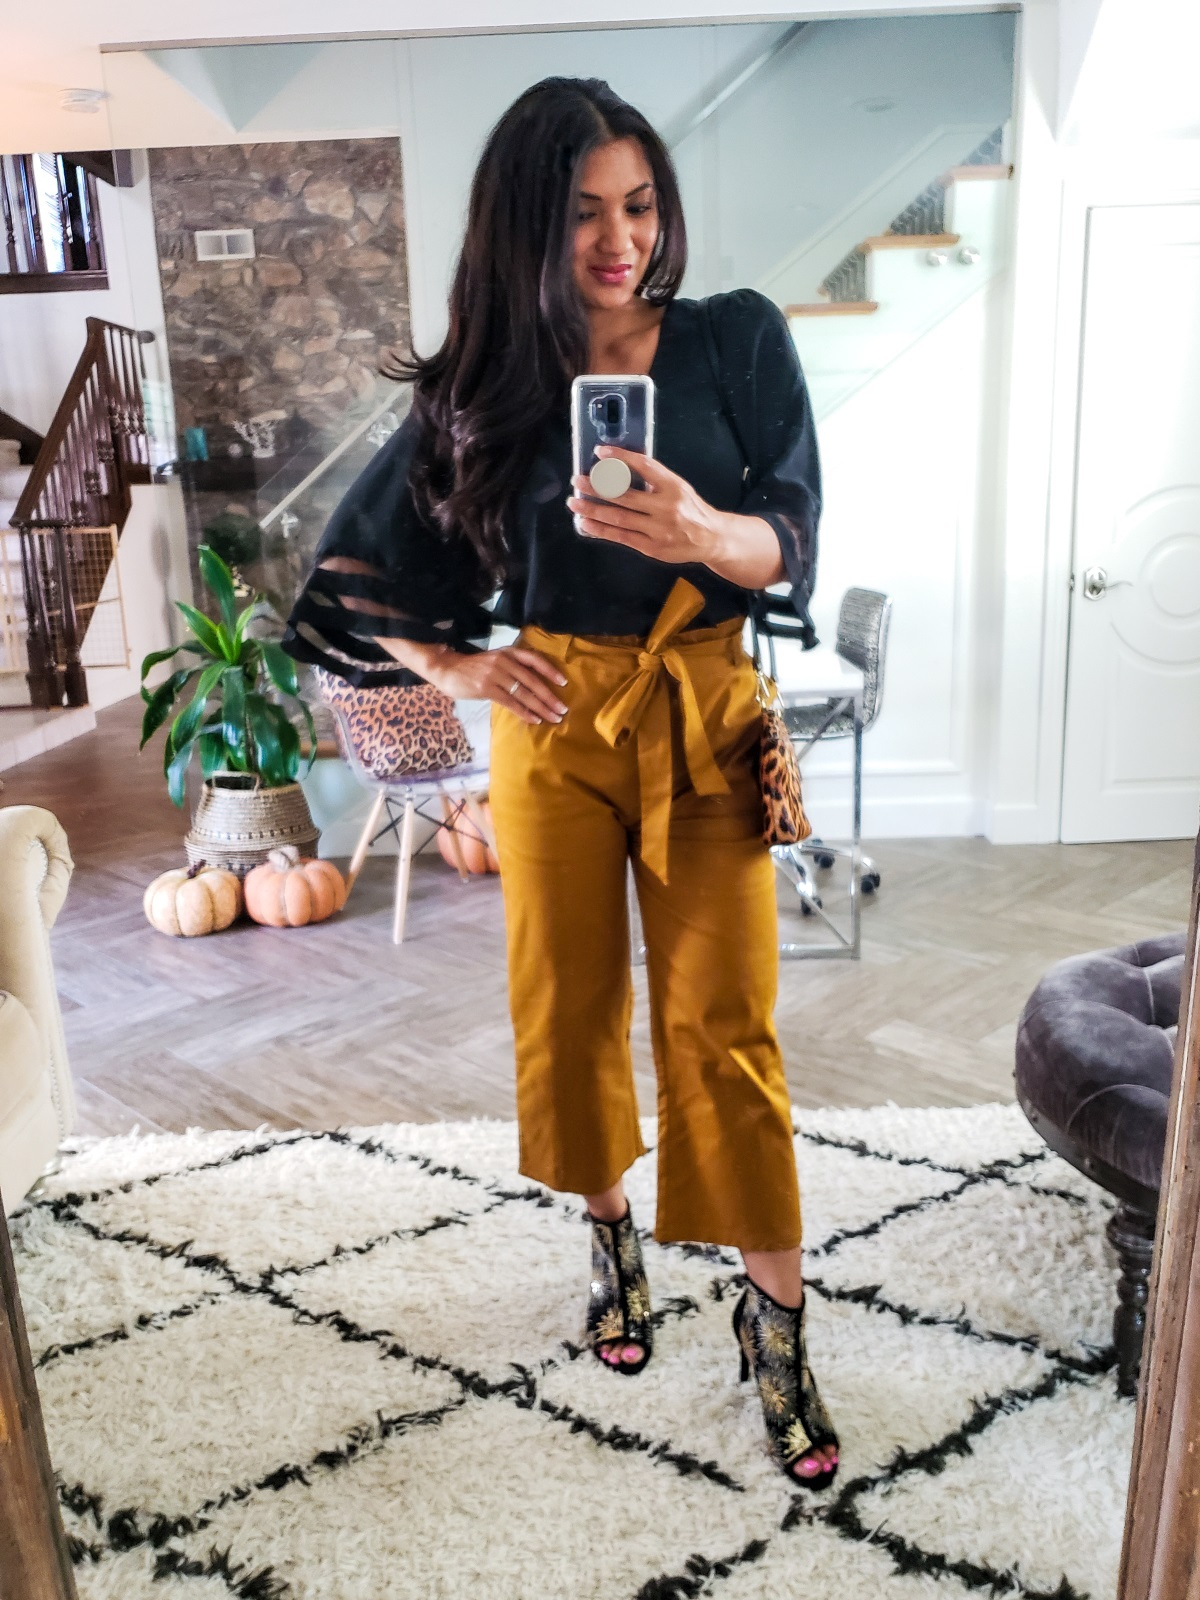 Ladies, looking for a clothing line that is about comfort and style? Orange County Blogger Debbie Savage is sharing her Amaryllis Apparel Try-On, click to see it here!